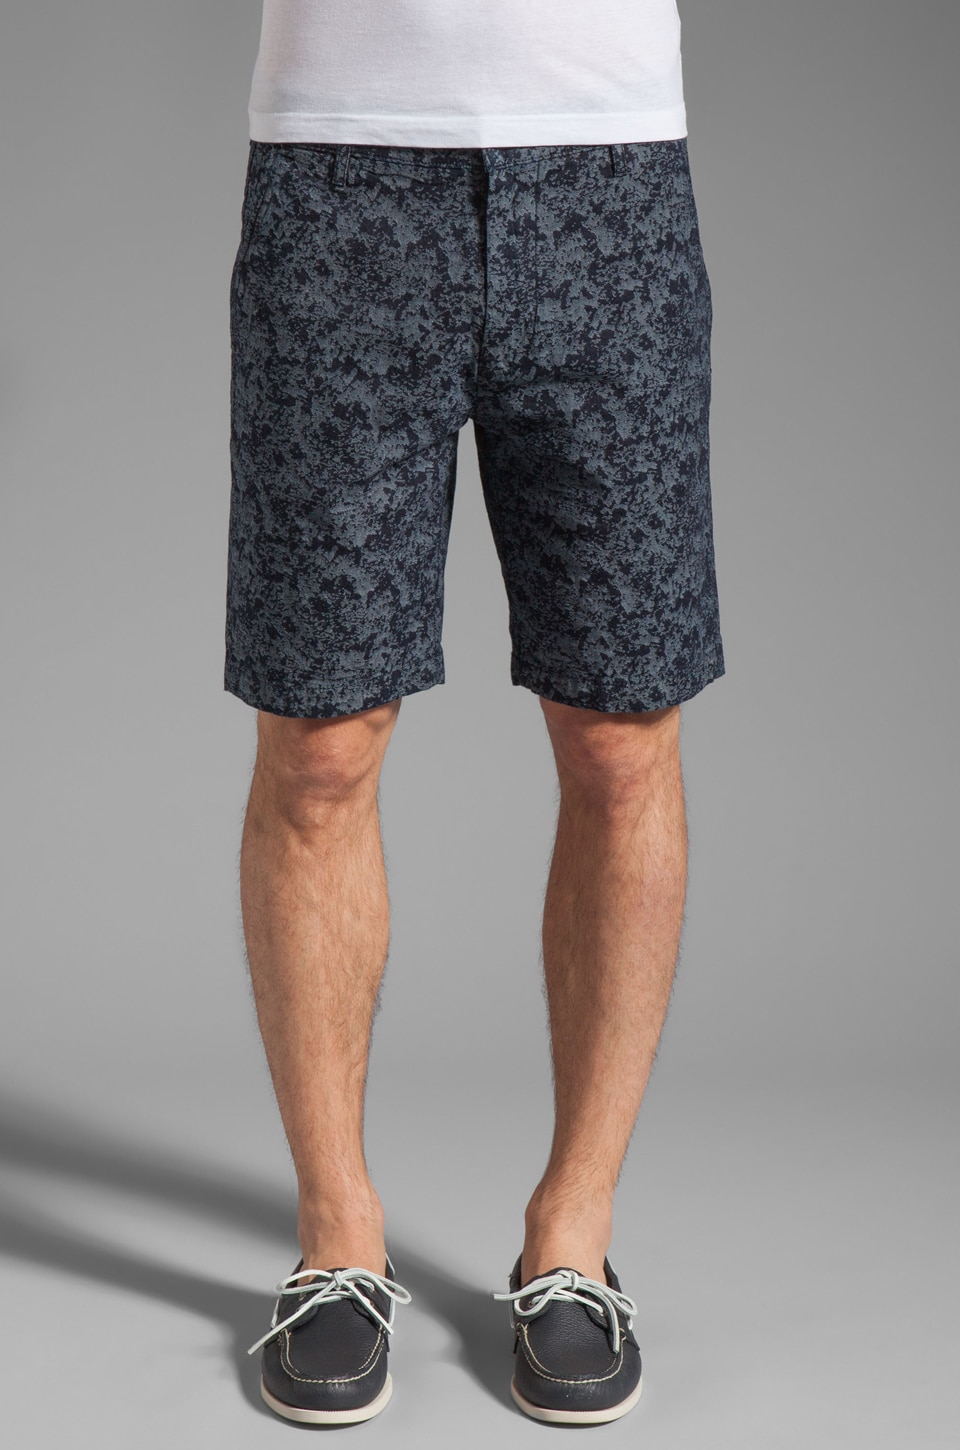 7 For All Mankind Chino Camo Jacquard Short in Indigo